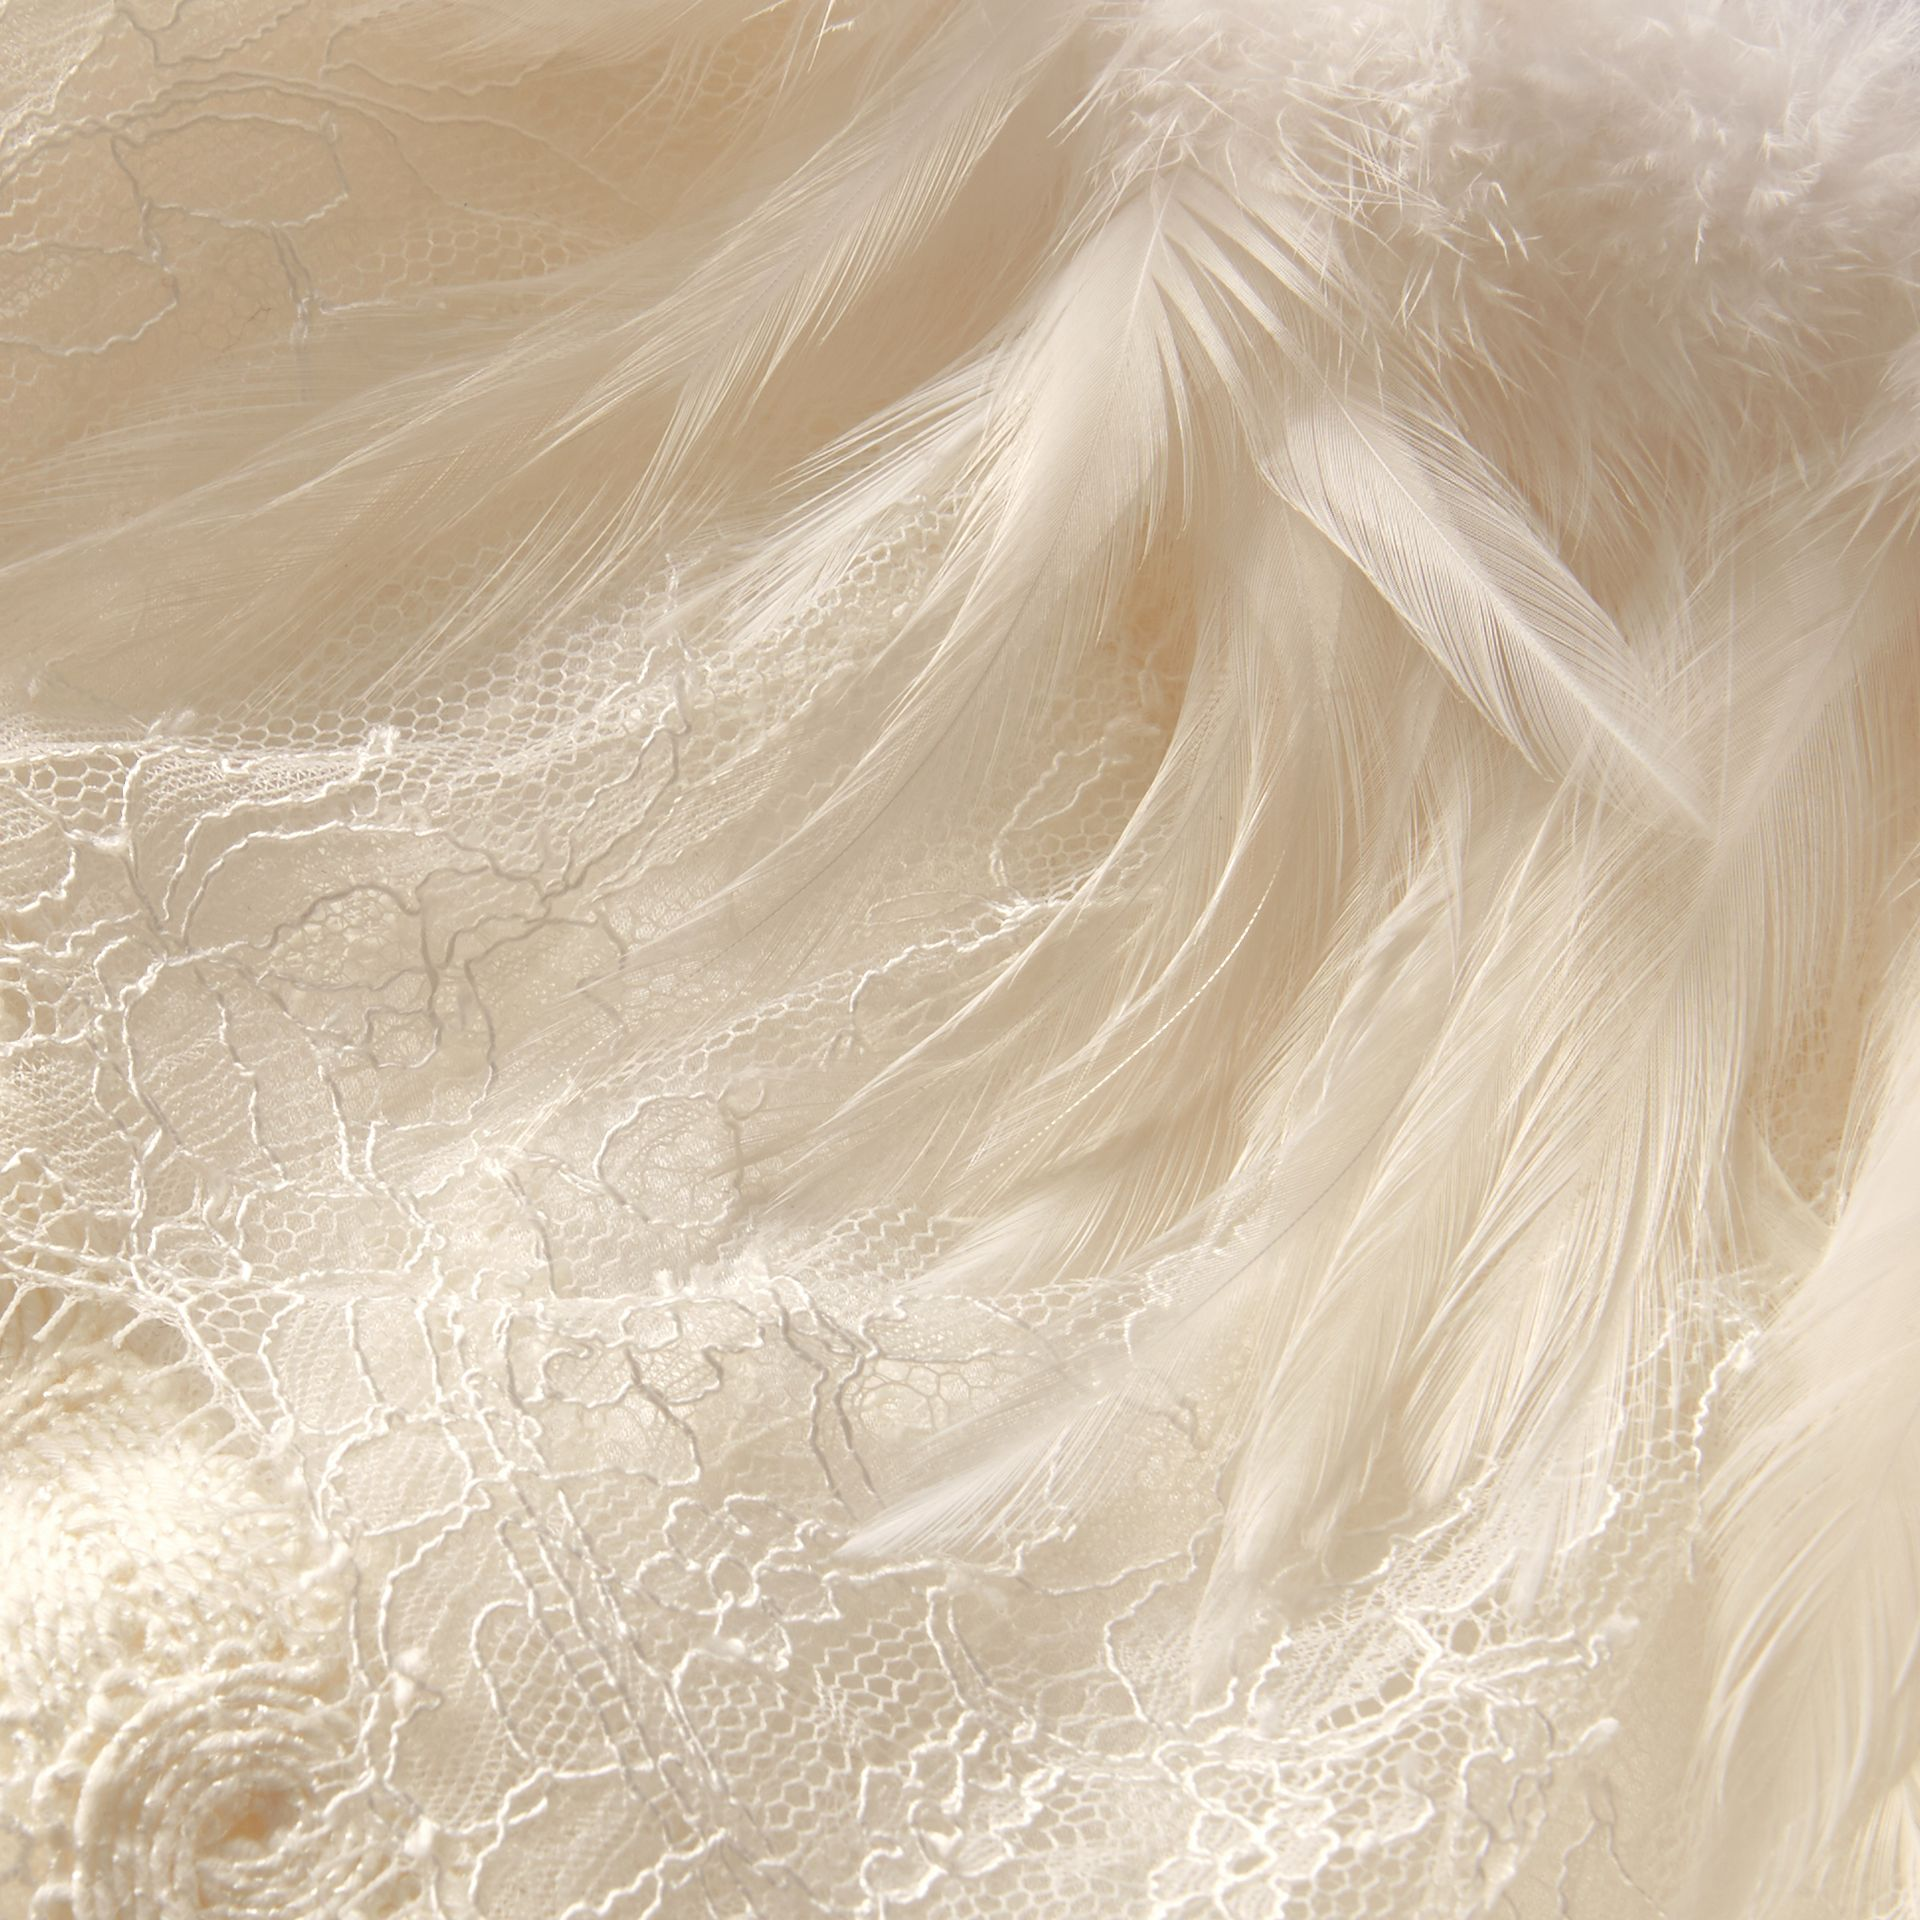 Feather Collar Detail Layered Lace Capelet in White - Women | Burberry Singapore - gallery image 2